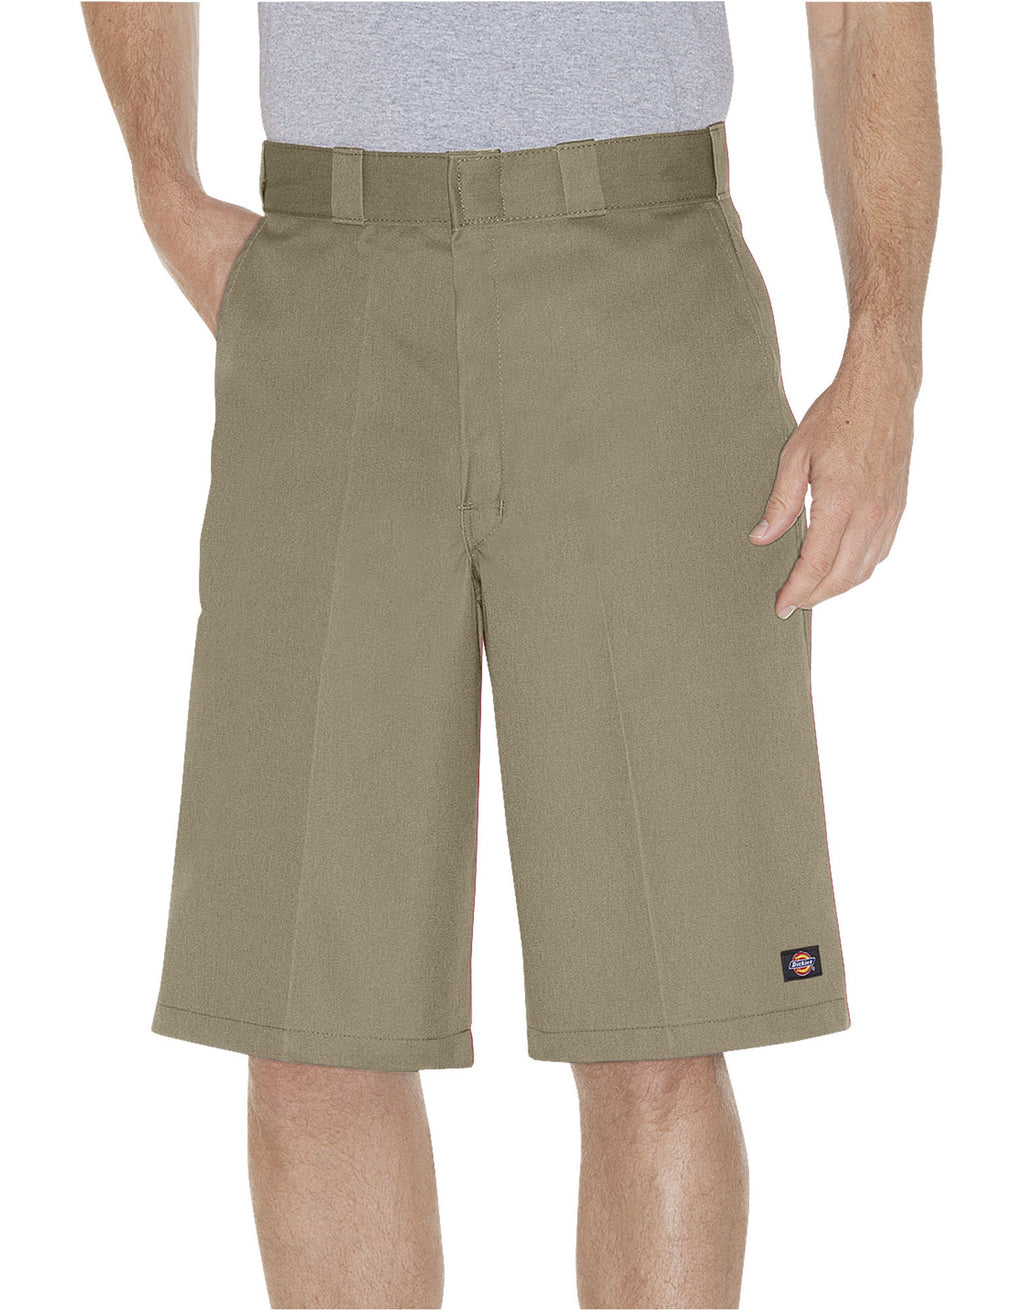 Dickies Men's Multi-Use Pocket Work Short Closeout-2